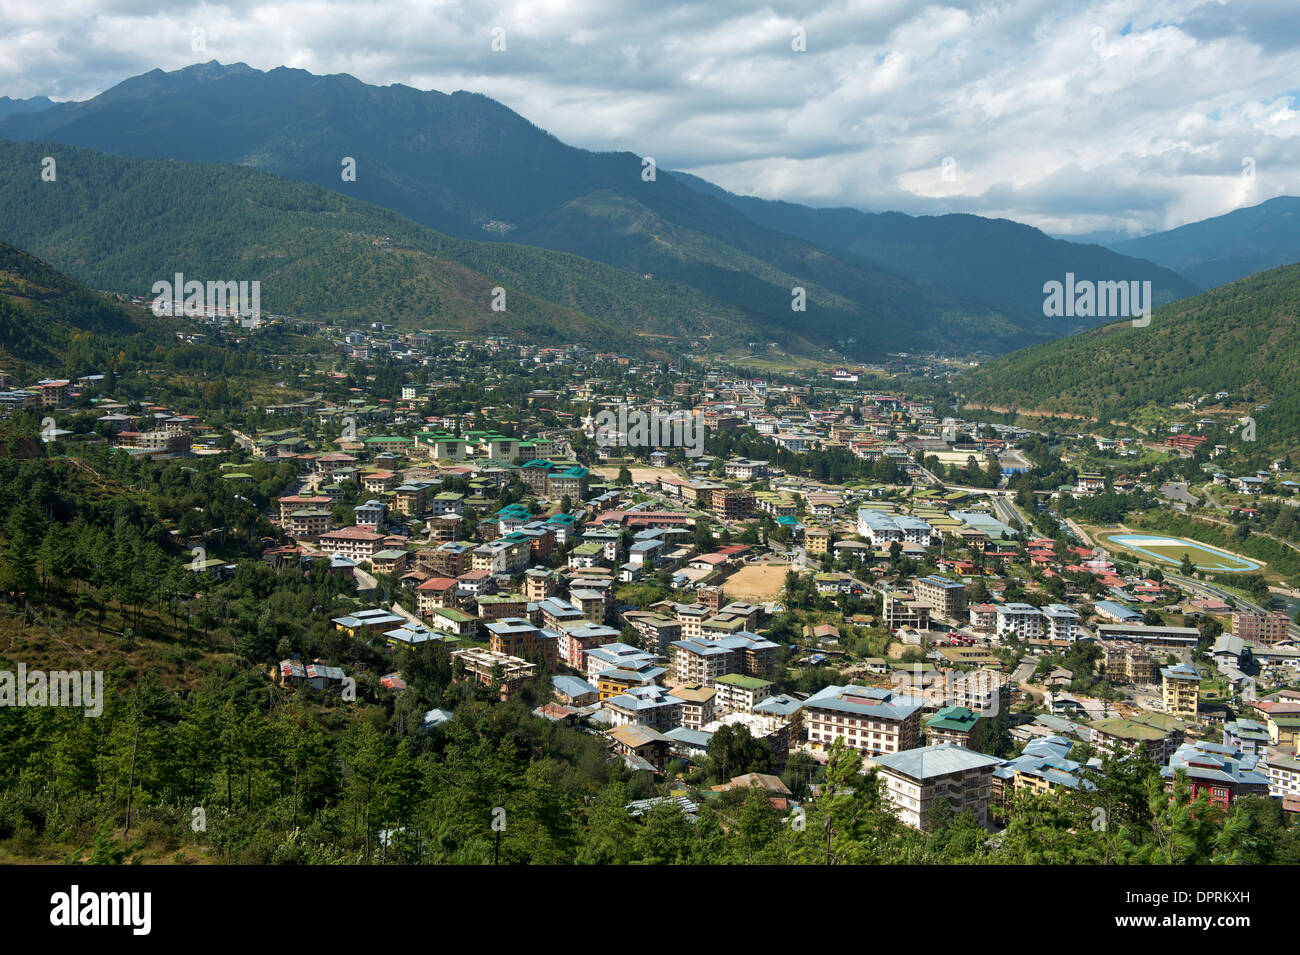 View at the capital Thimphu, Bhutan - Stock Image